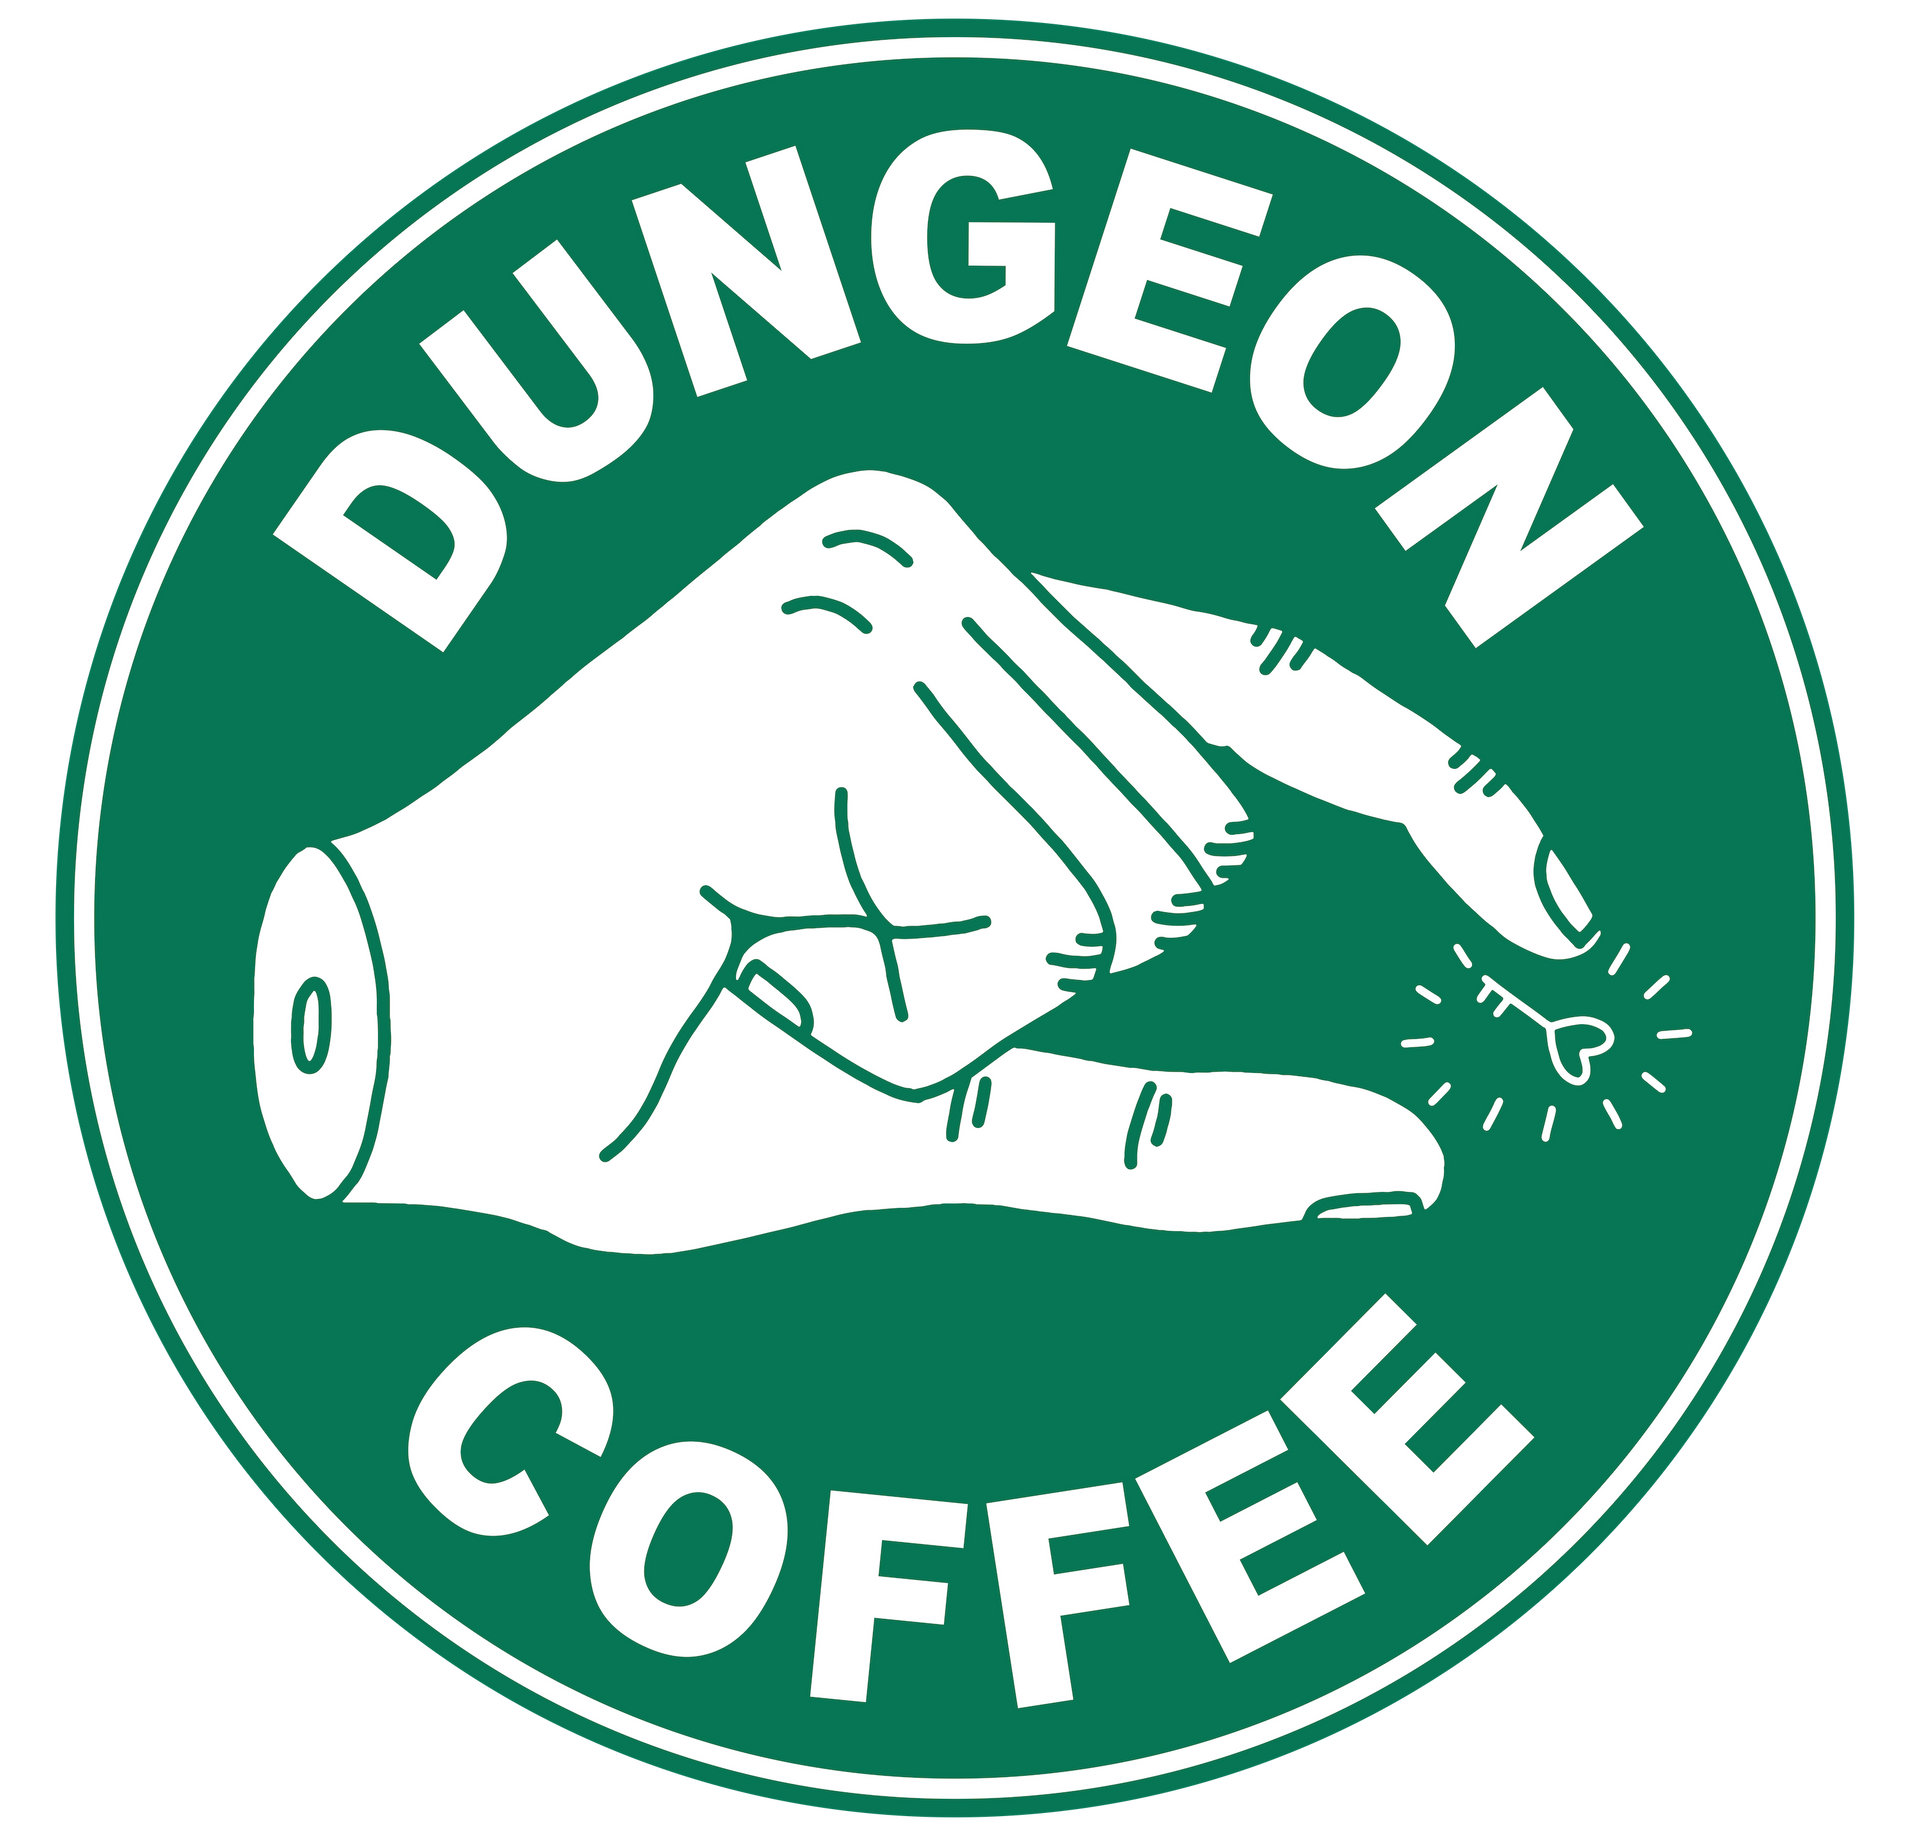 Dungeon_Coffee_logo.png